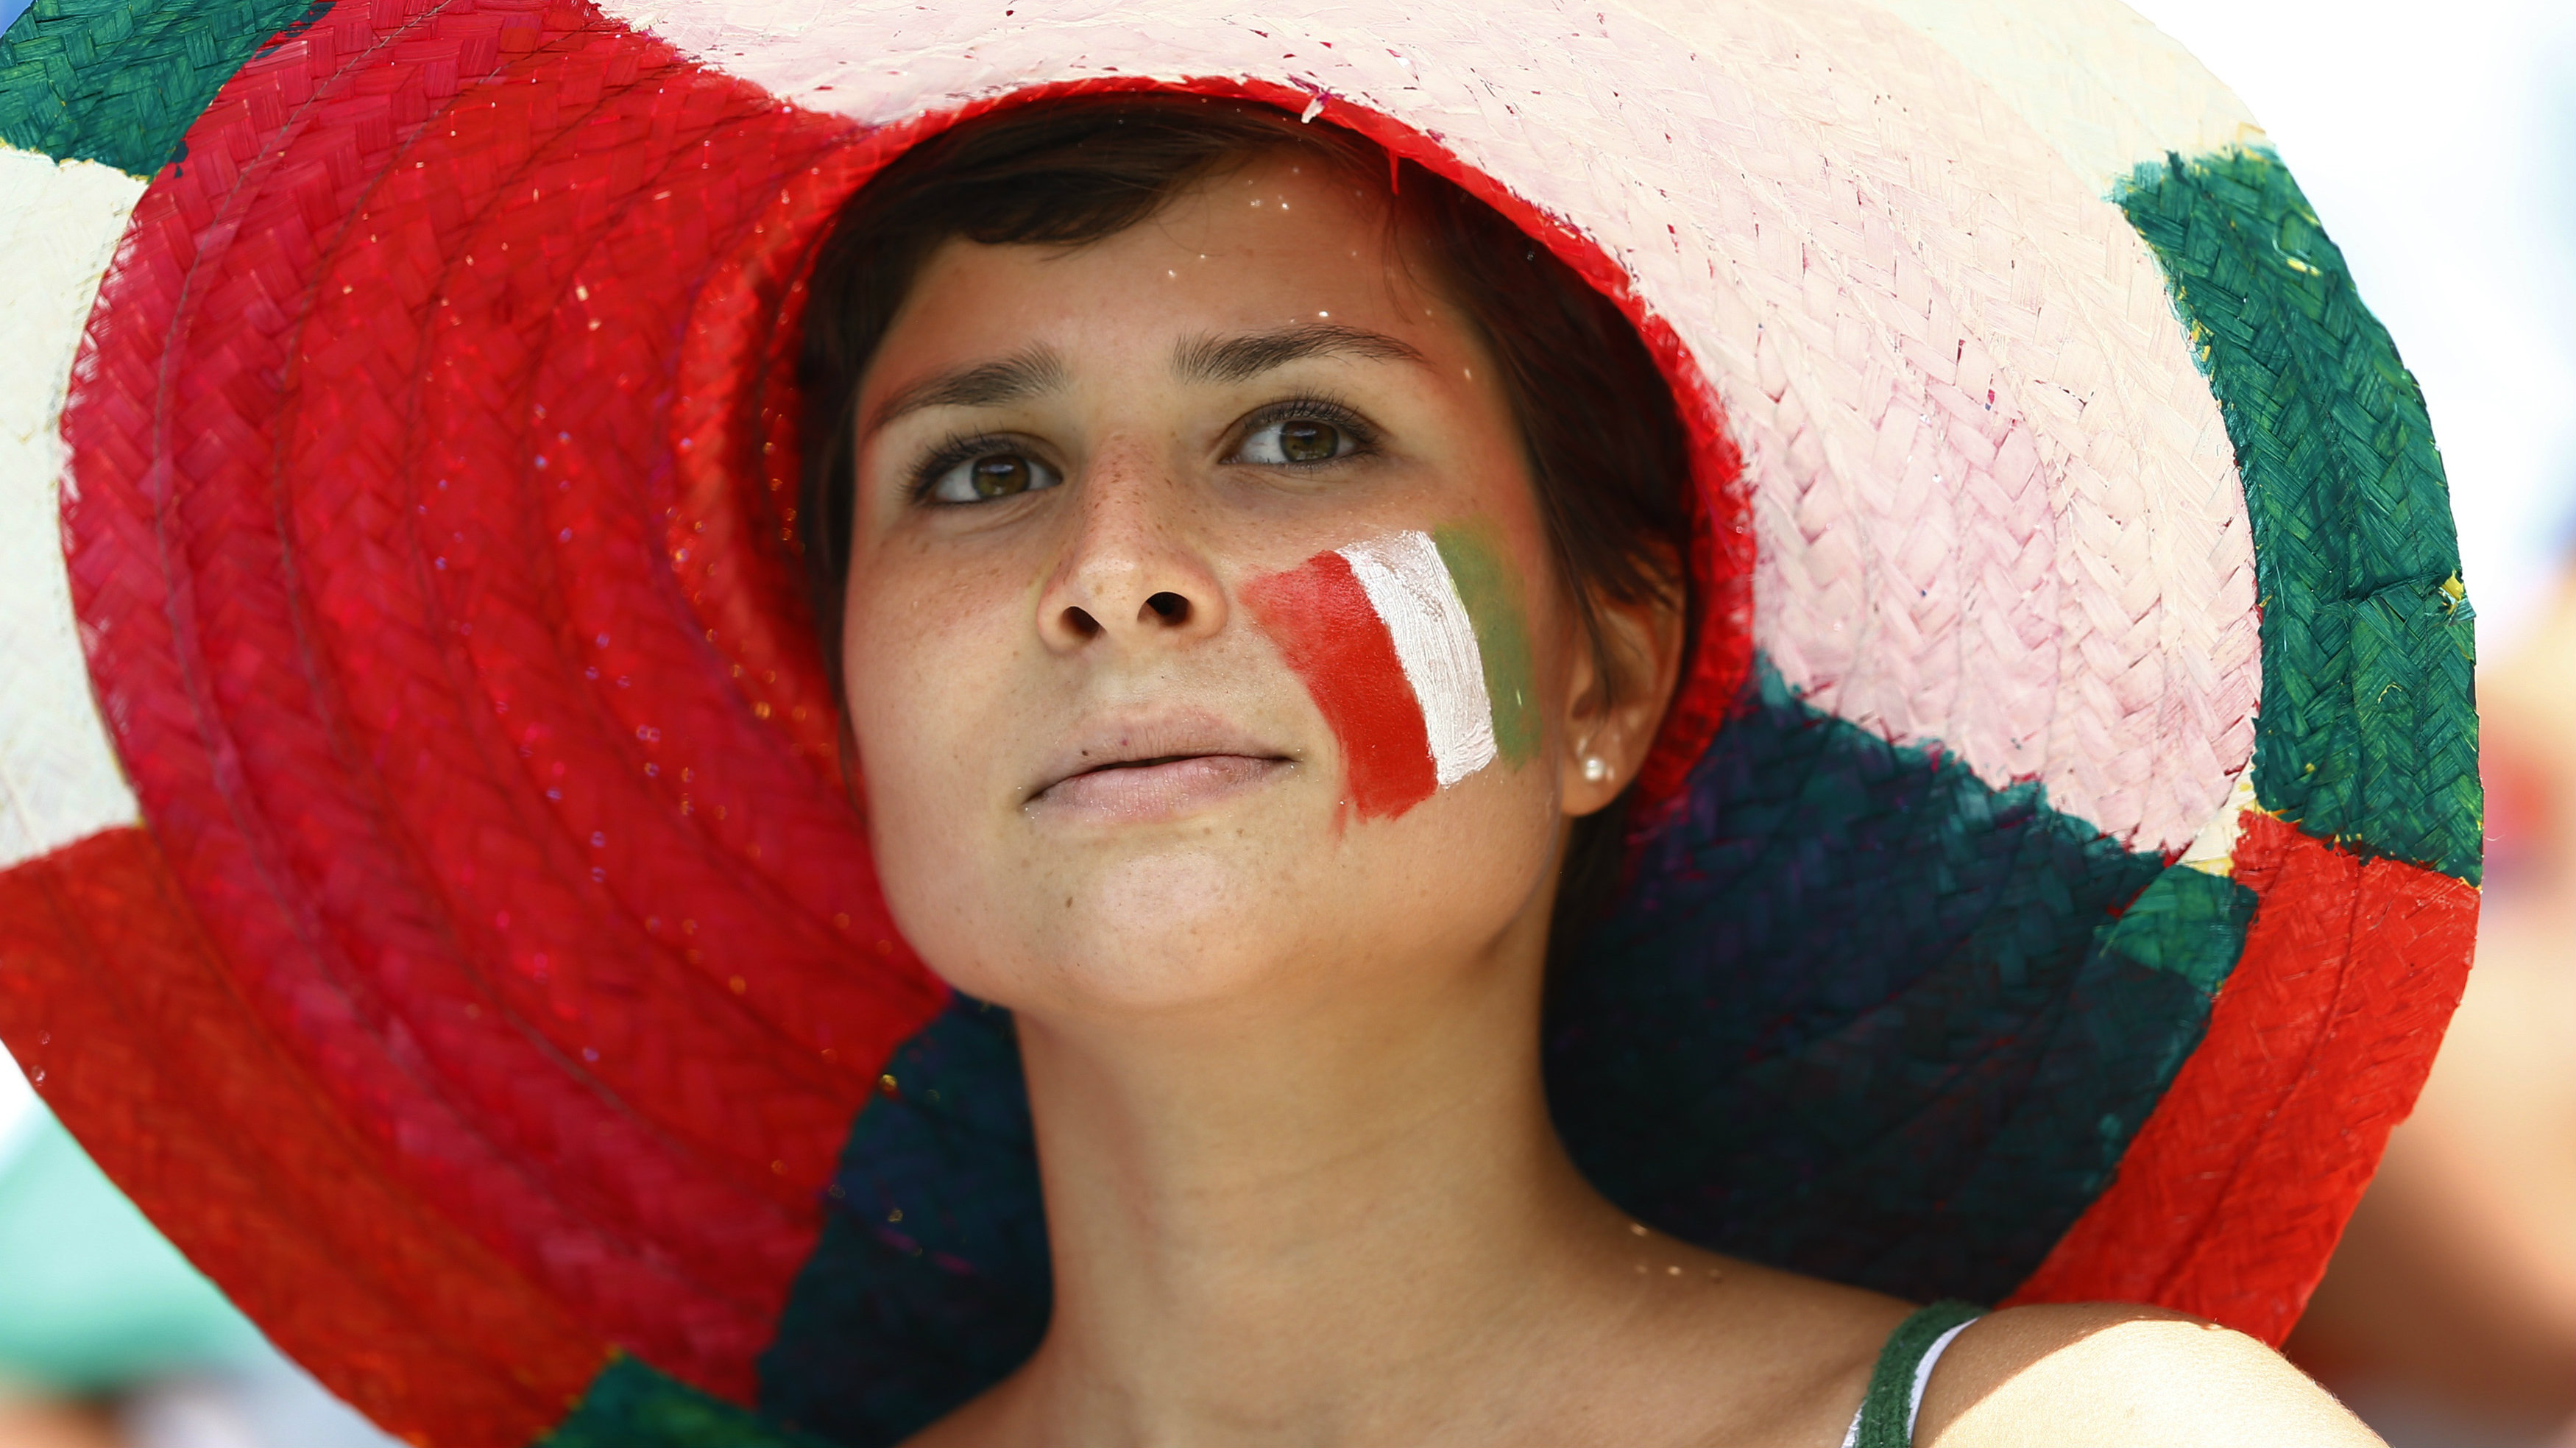 A fan of Italy with an image of the national flag painted on her face, is pictured before their 2014 World Cup Group D soccer match against Costa Rica at the Pernambuco arena in Recife June 20, 2014. REUTERS/Dominic Ebenbichler